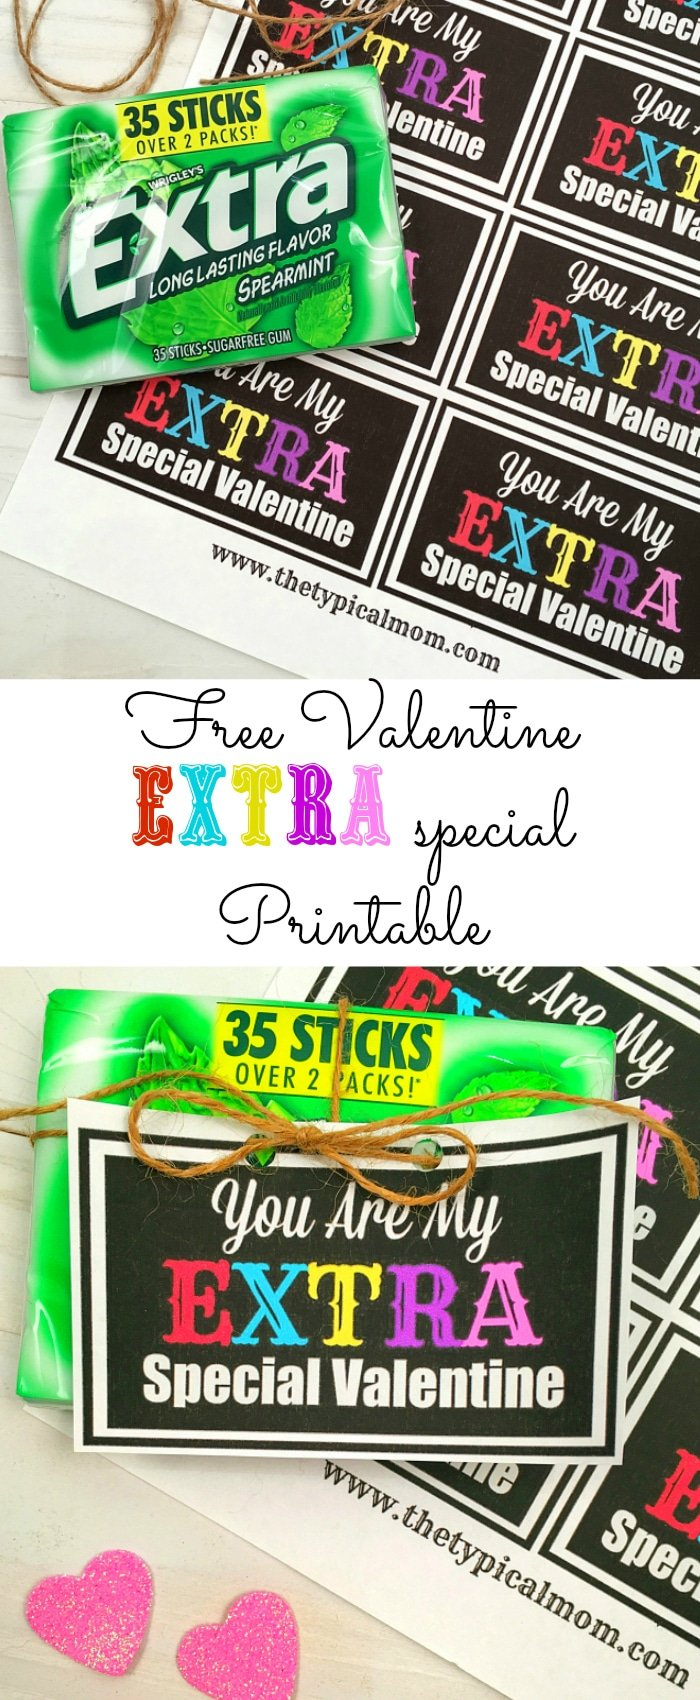 This is an image of Magic Extra Gum Valentine Printable